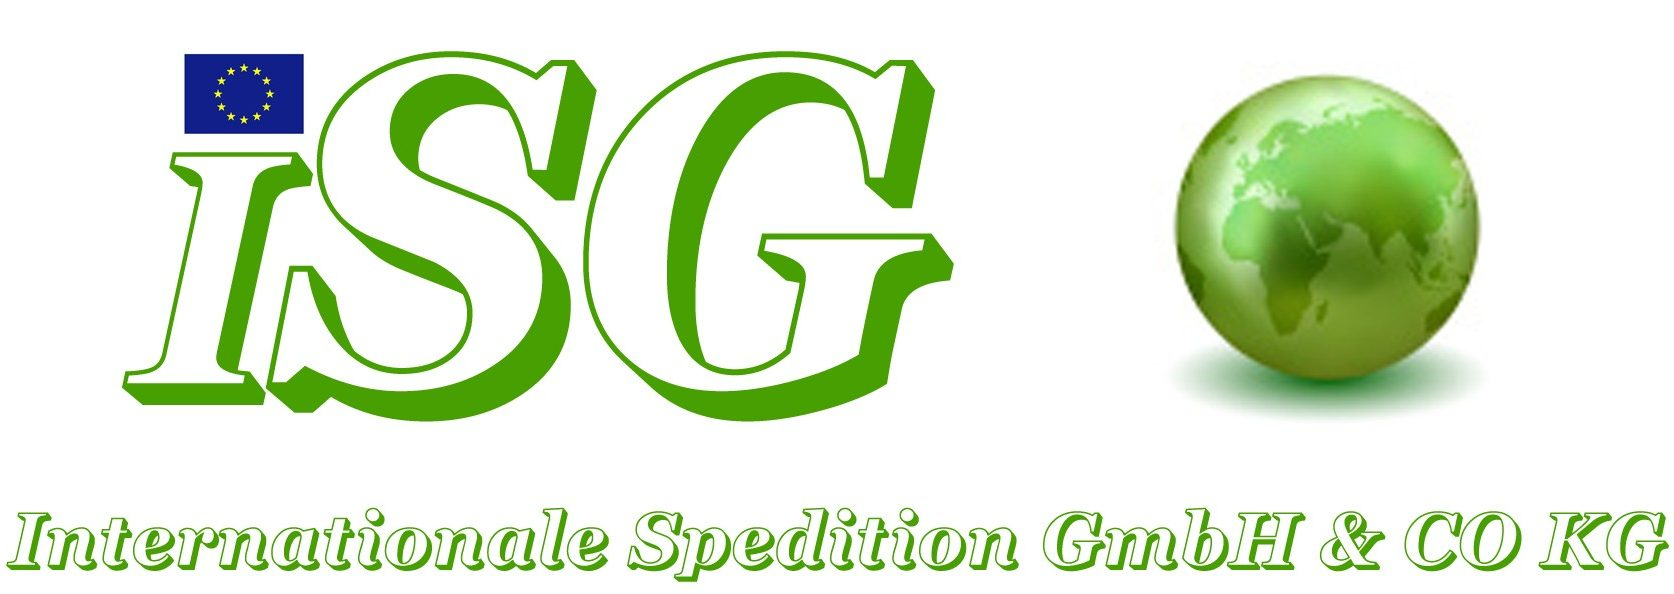 Internationale Spedition GmbH & Co.KG